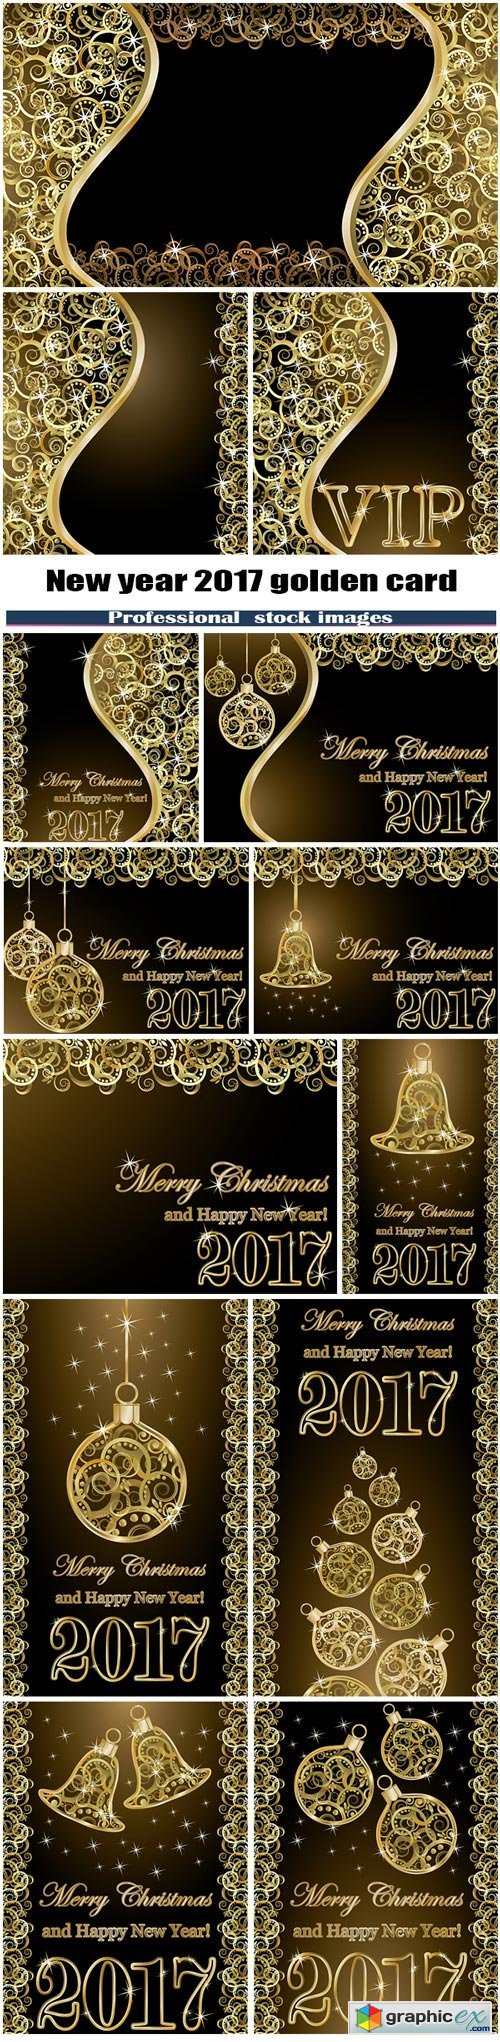 Merry Christmas and happy new year 2017 golden card